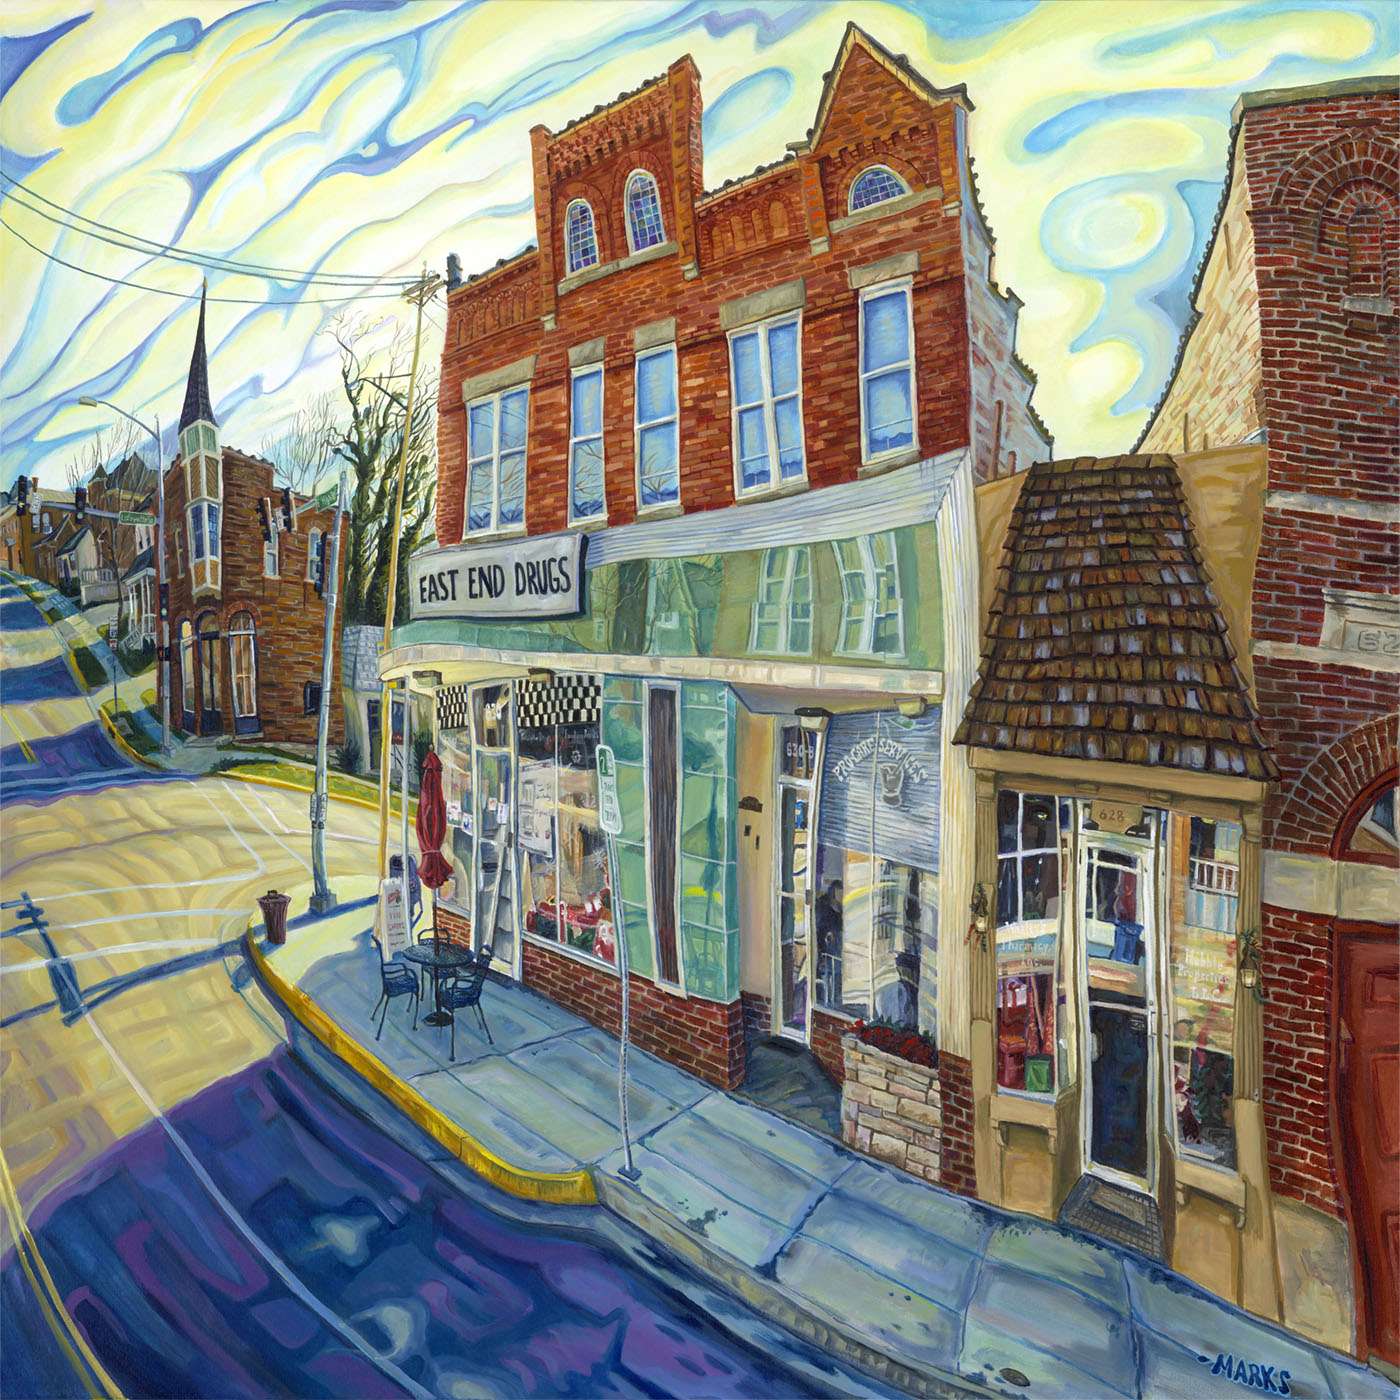 East End Drugs - 40 x 30 - Acrylic on Canvas $5,000    Sold